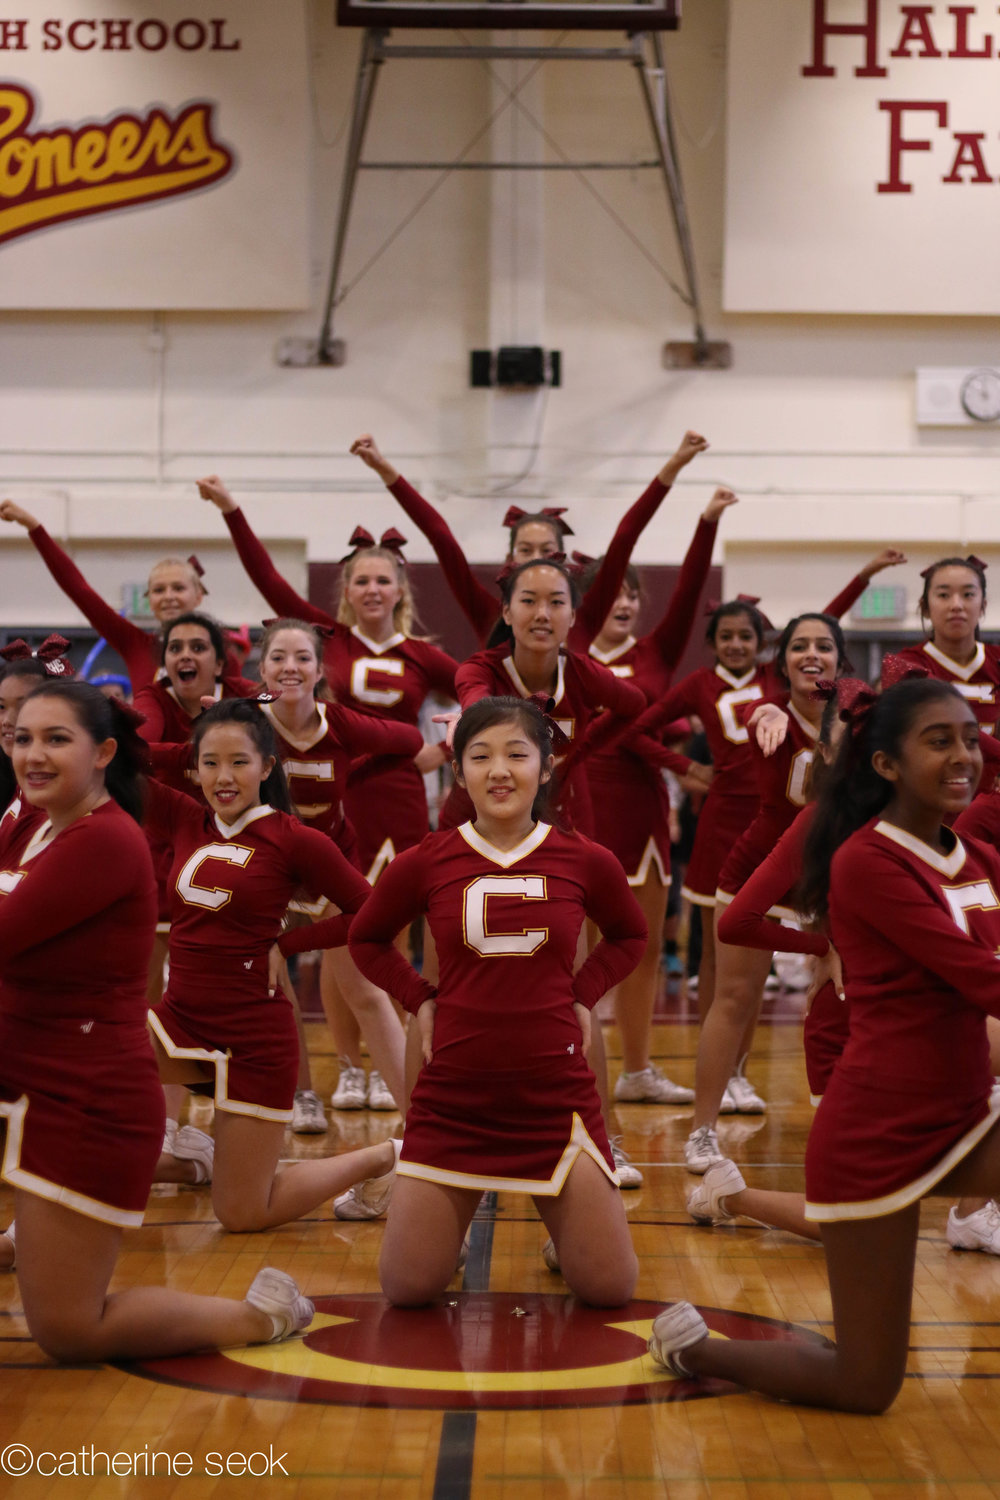 Homecoming - Cheer performs on final Friday